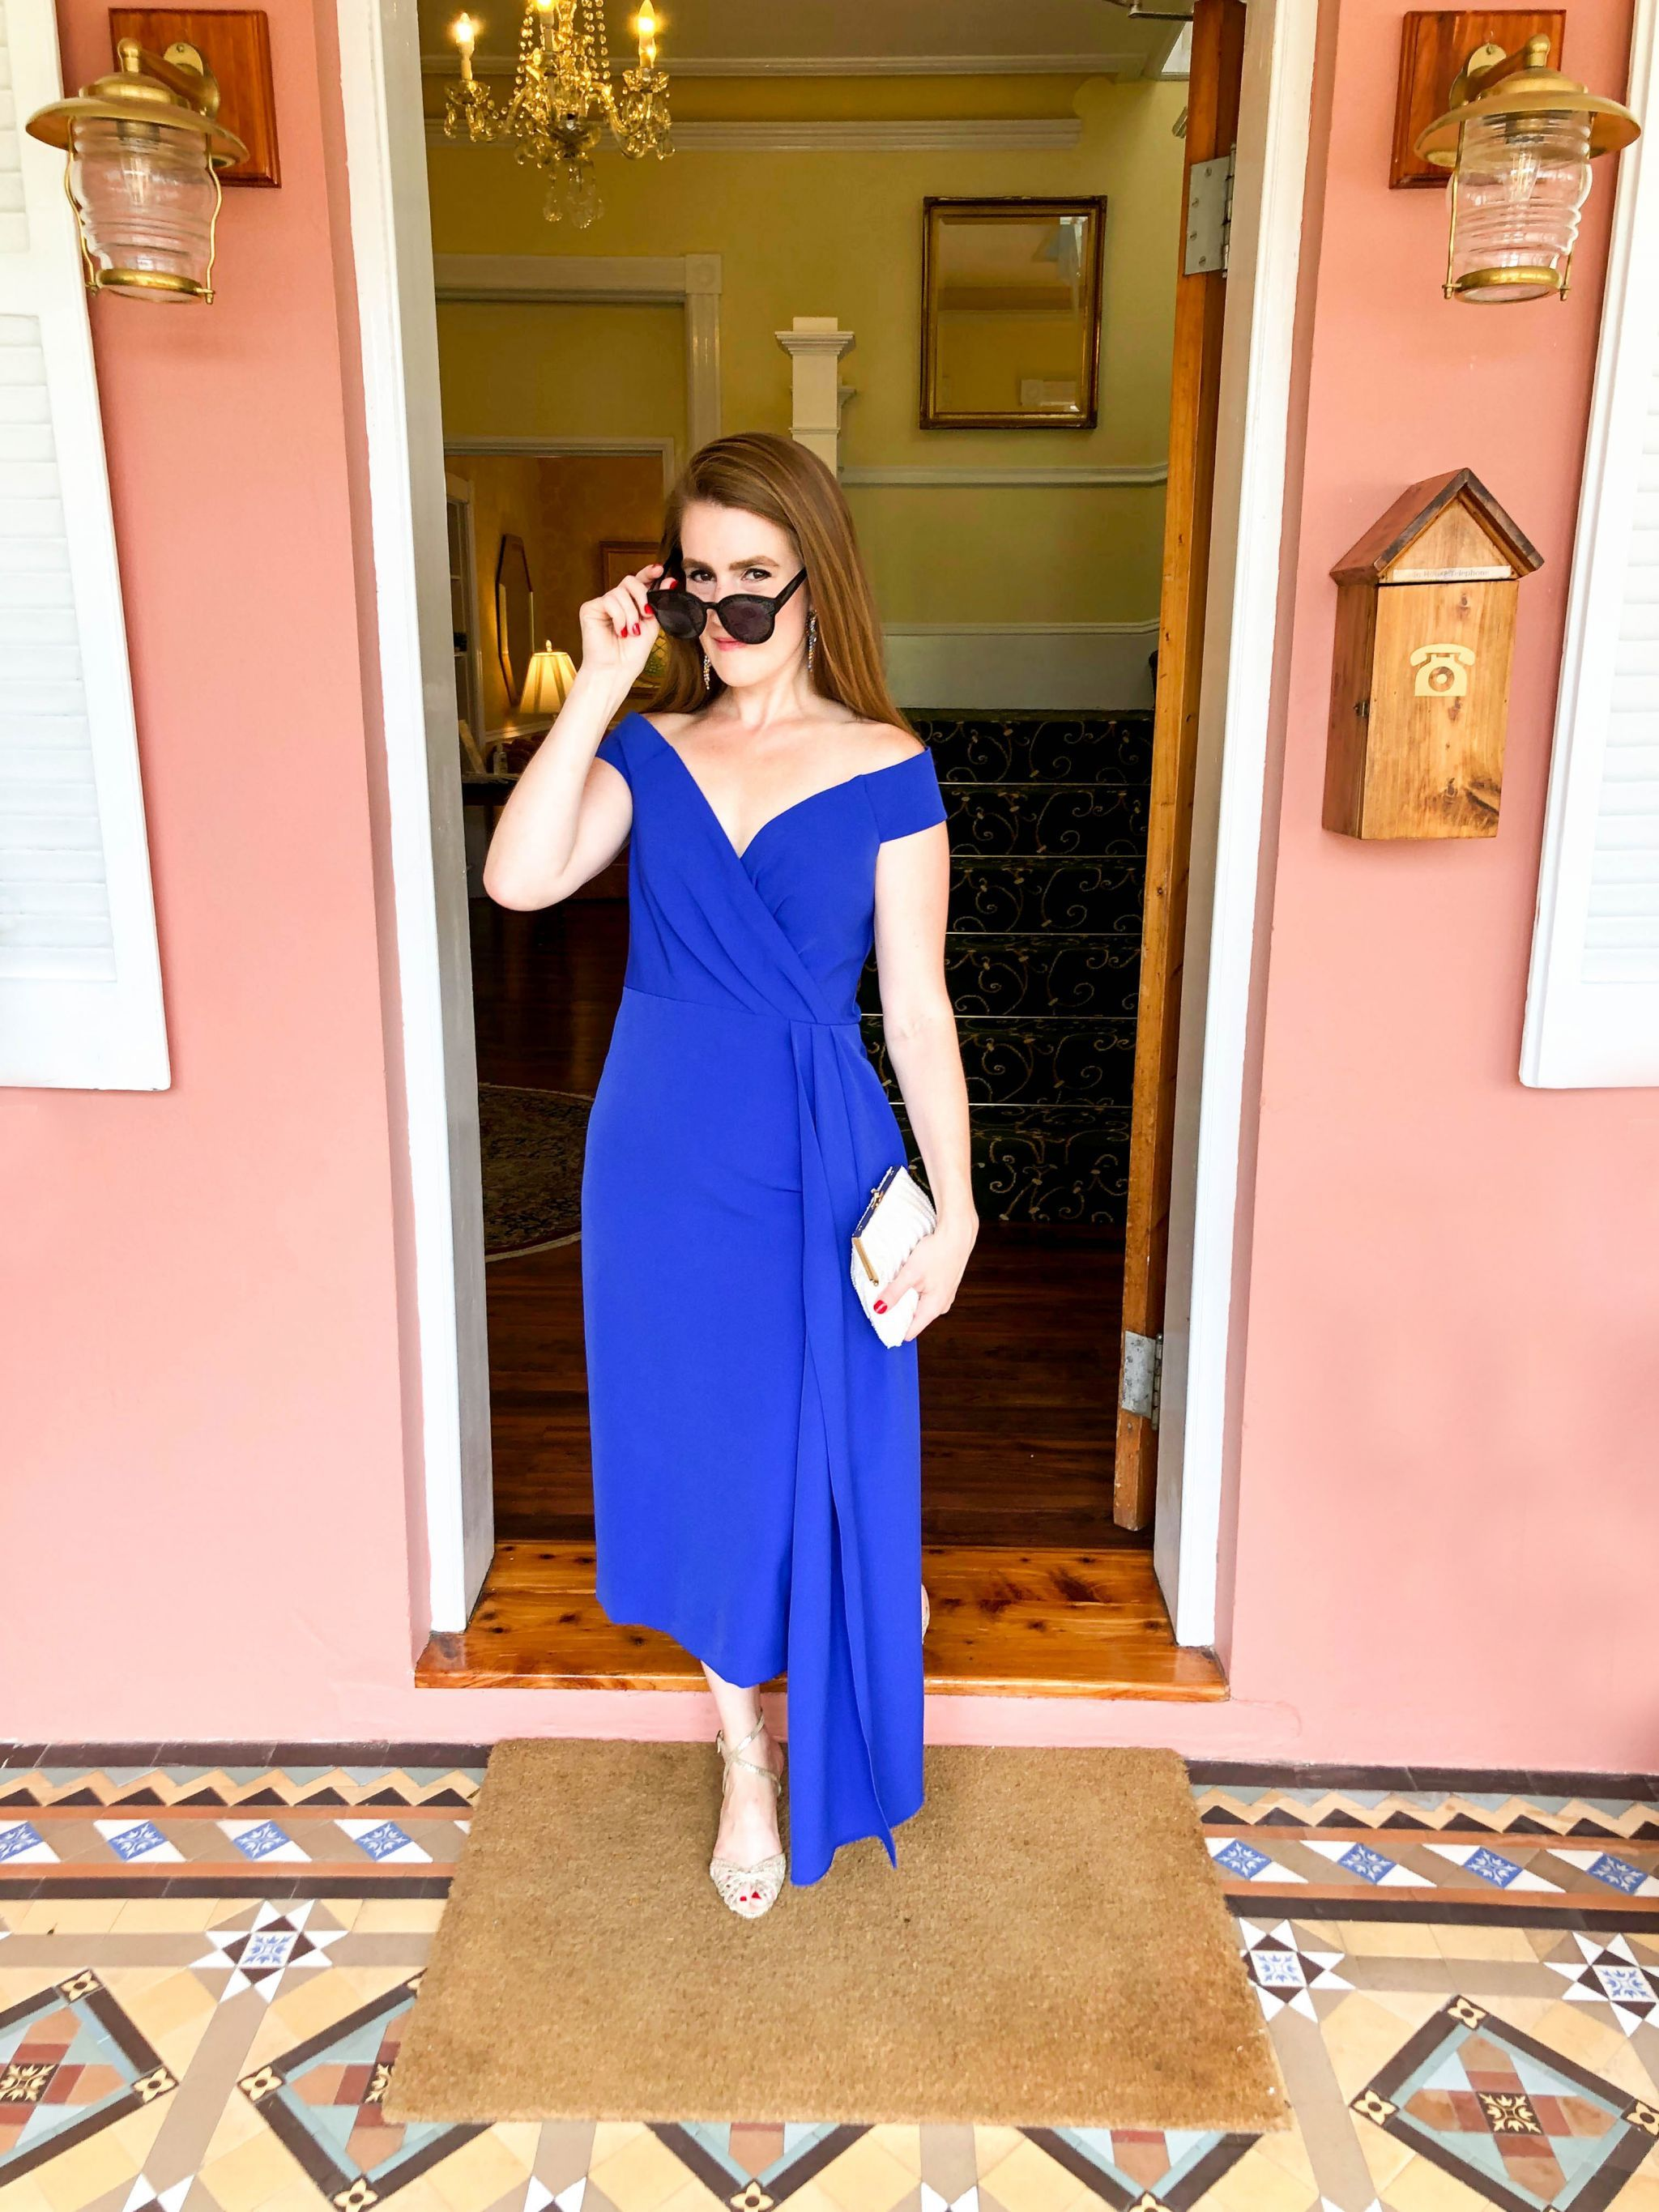 What To Wear To A Summer Black Tie Wedding In Bermuda Heather Bien Dresses To Wear To A Wedding Black Tie Dress Wedding Black Tie Wedding [ 2731 x 2048 Pixel ]